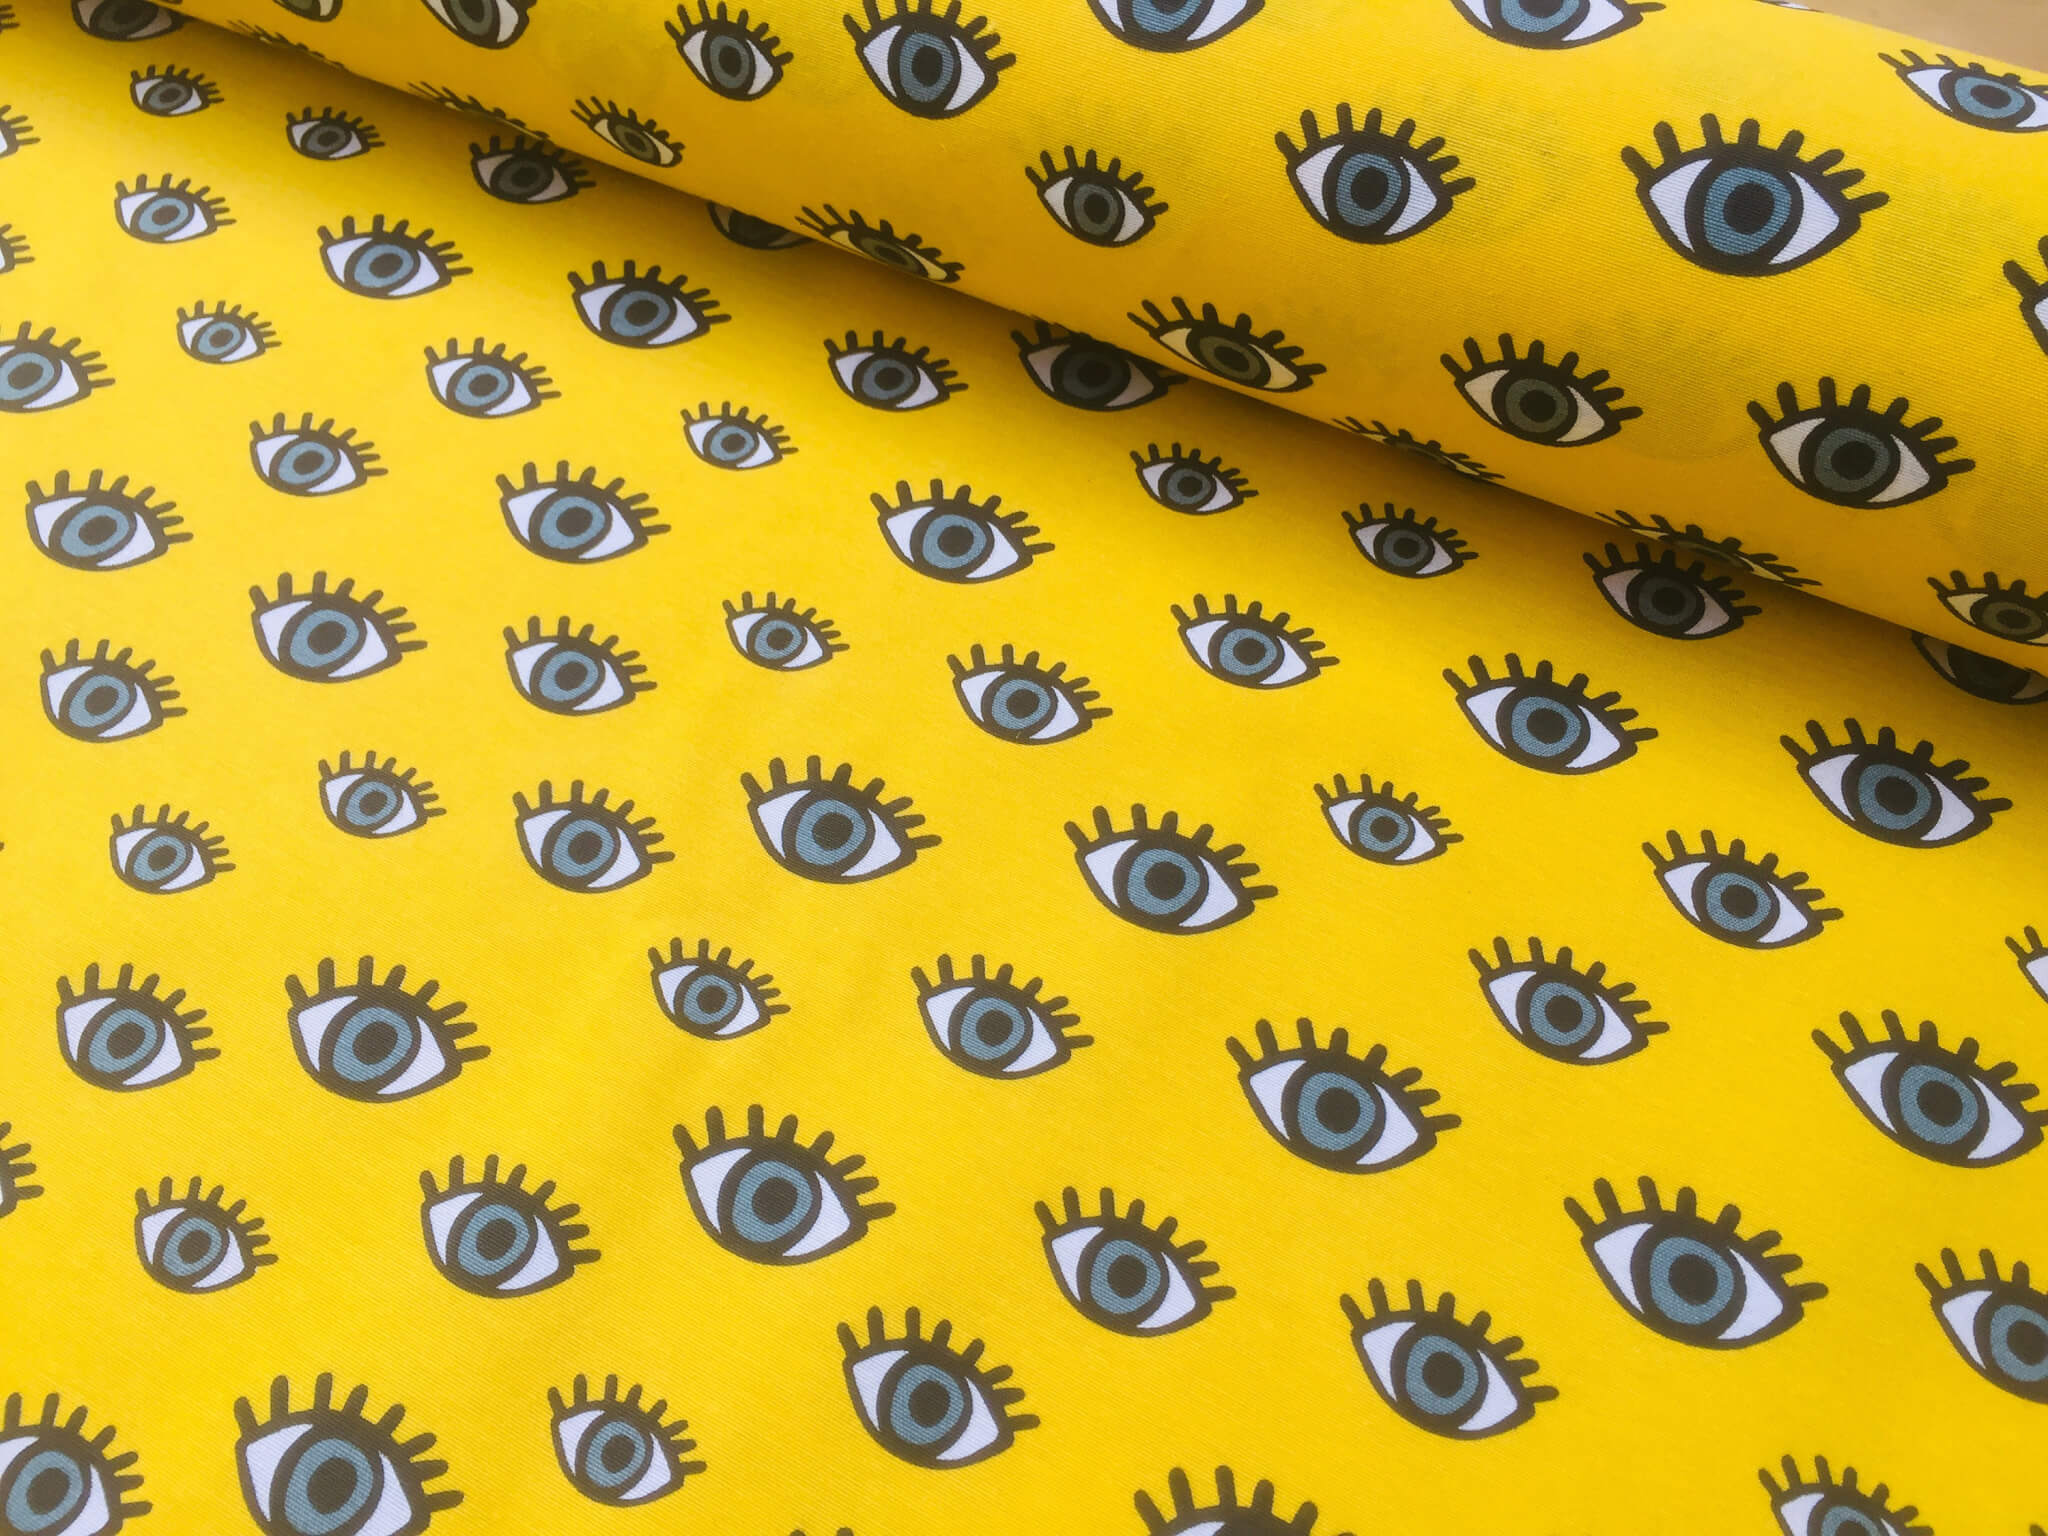 blue-eyes-on-yellow-fabric-watching-eye-print-material-dressmaking-home-decor-curtain-upholstery-textile-140cm-55-wide-5d330f3d1.jpg